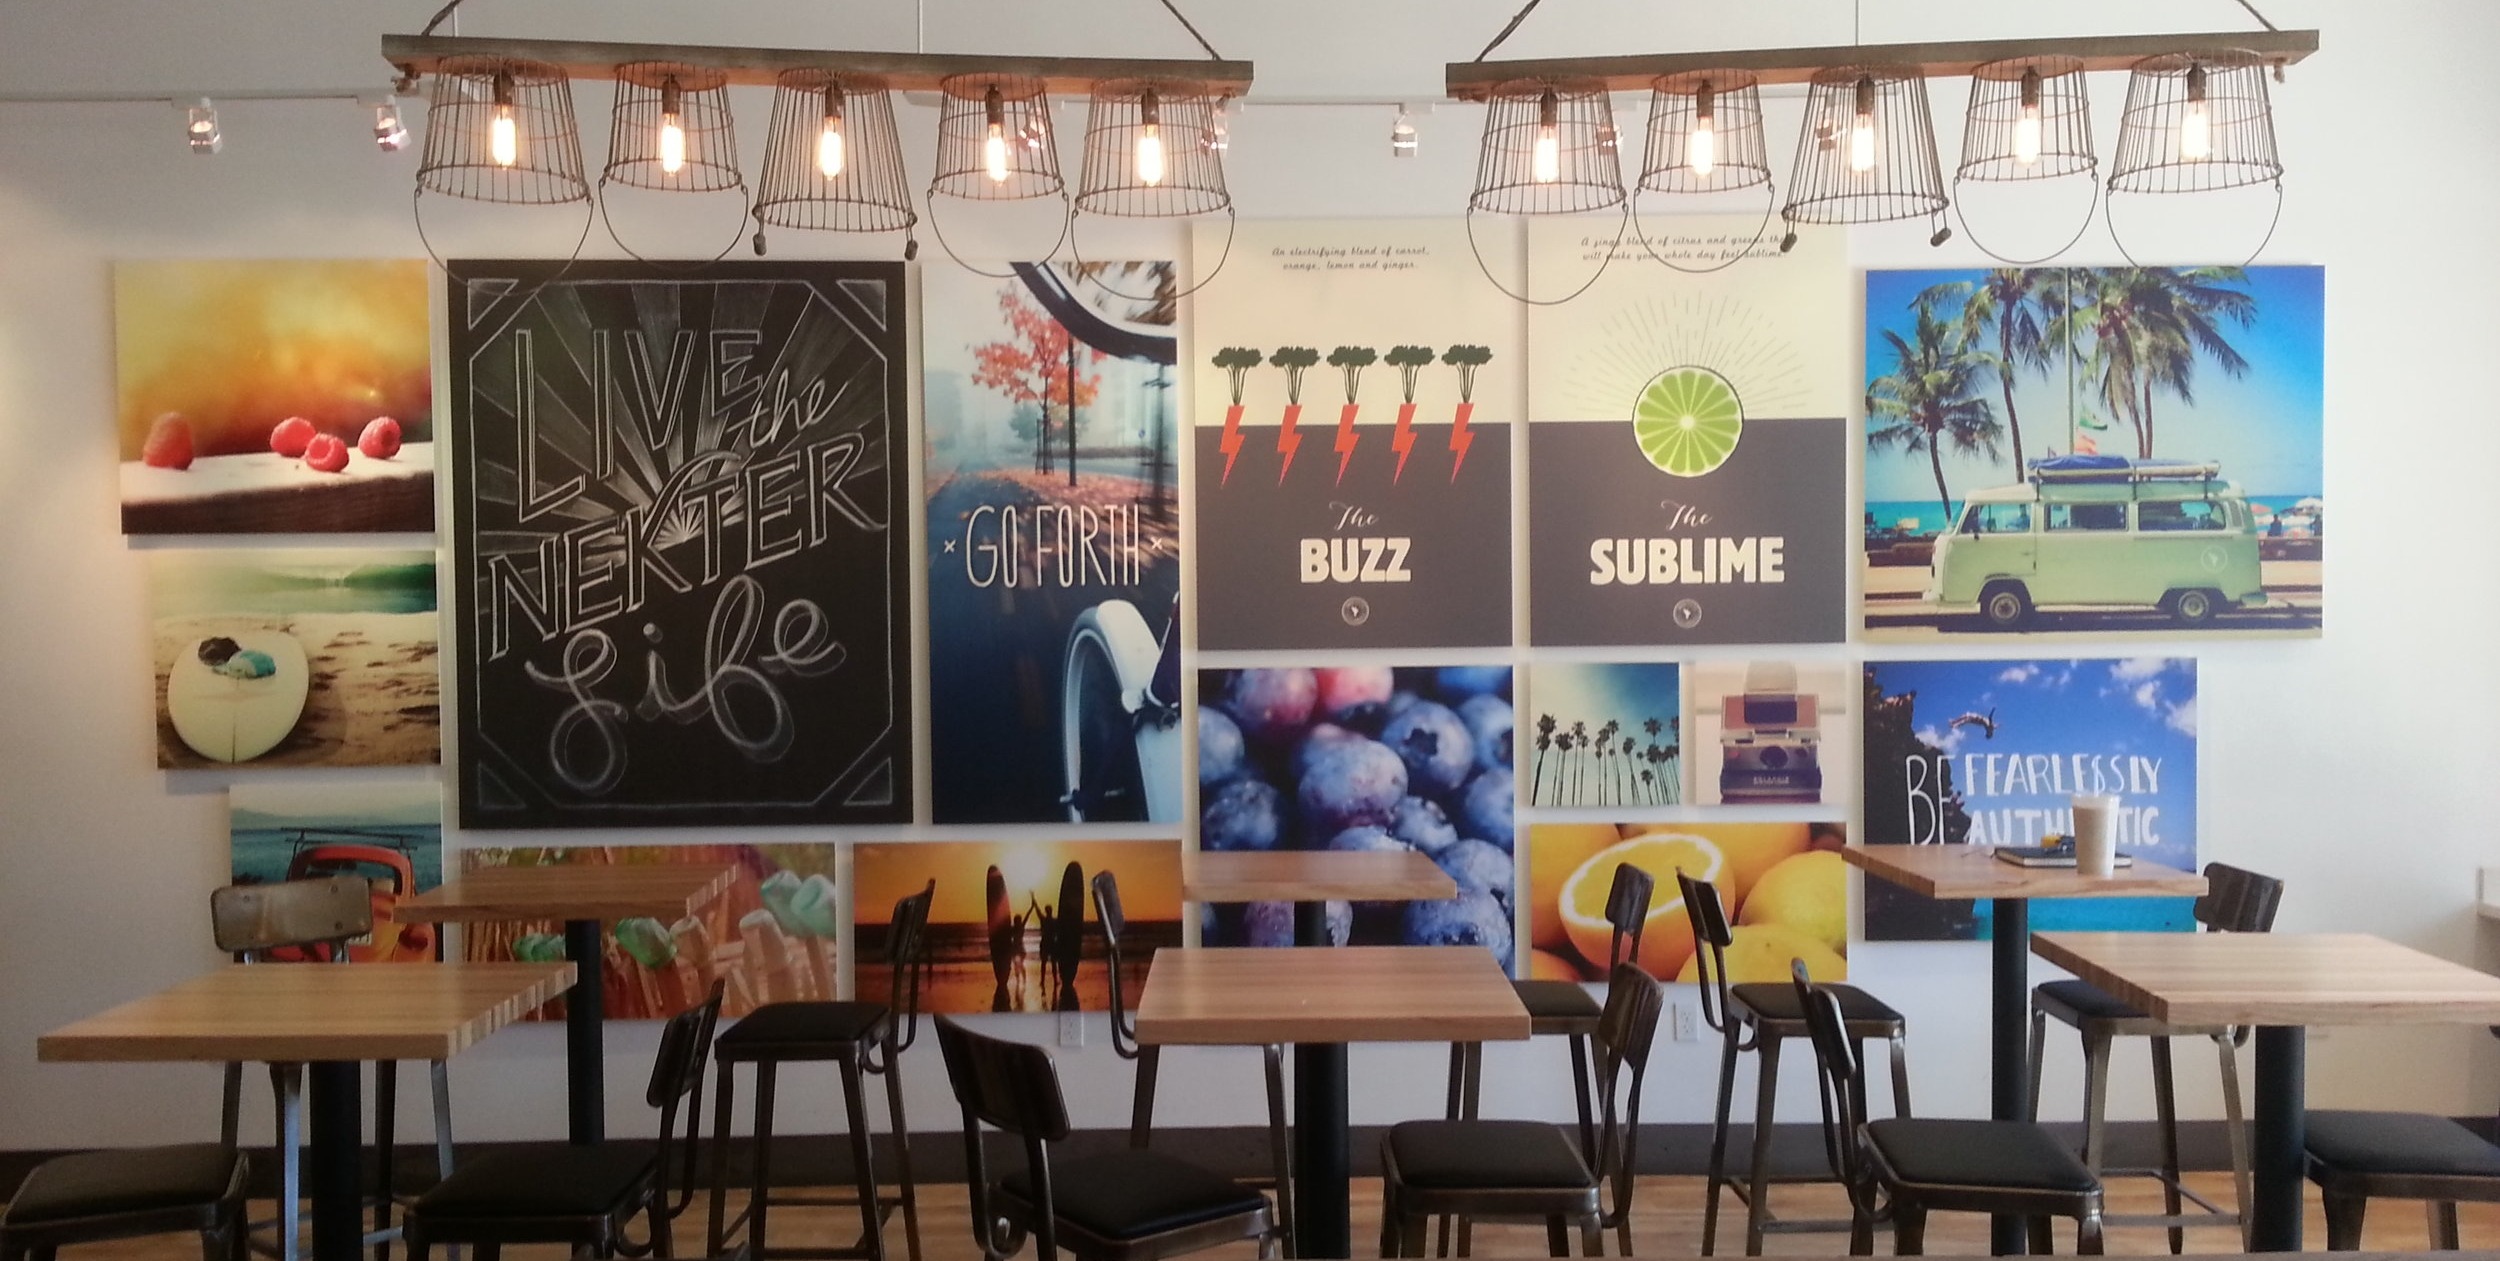 nekter-juice-bar-wall-art.jpg